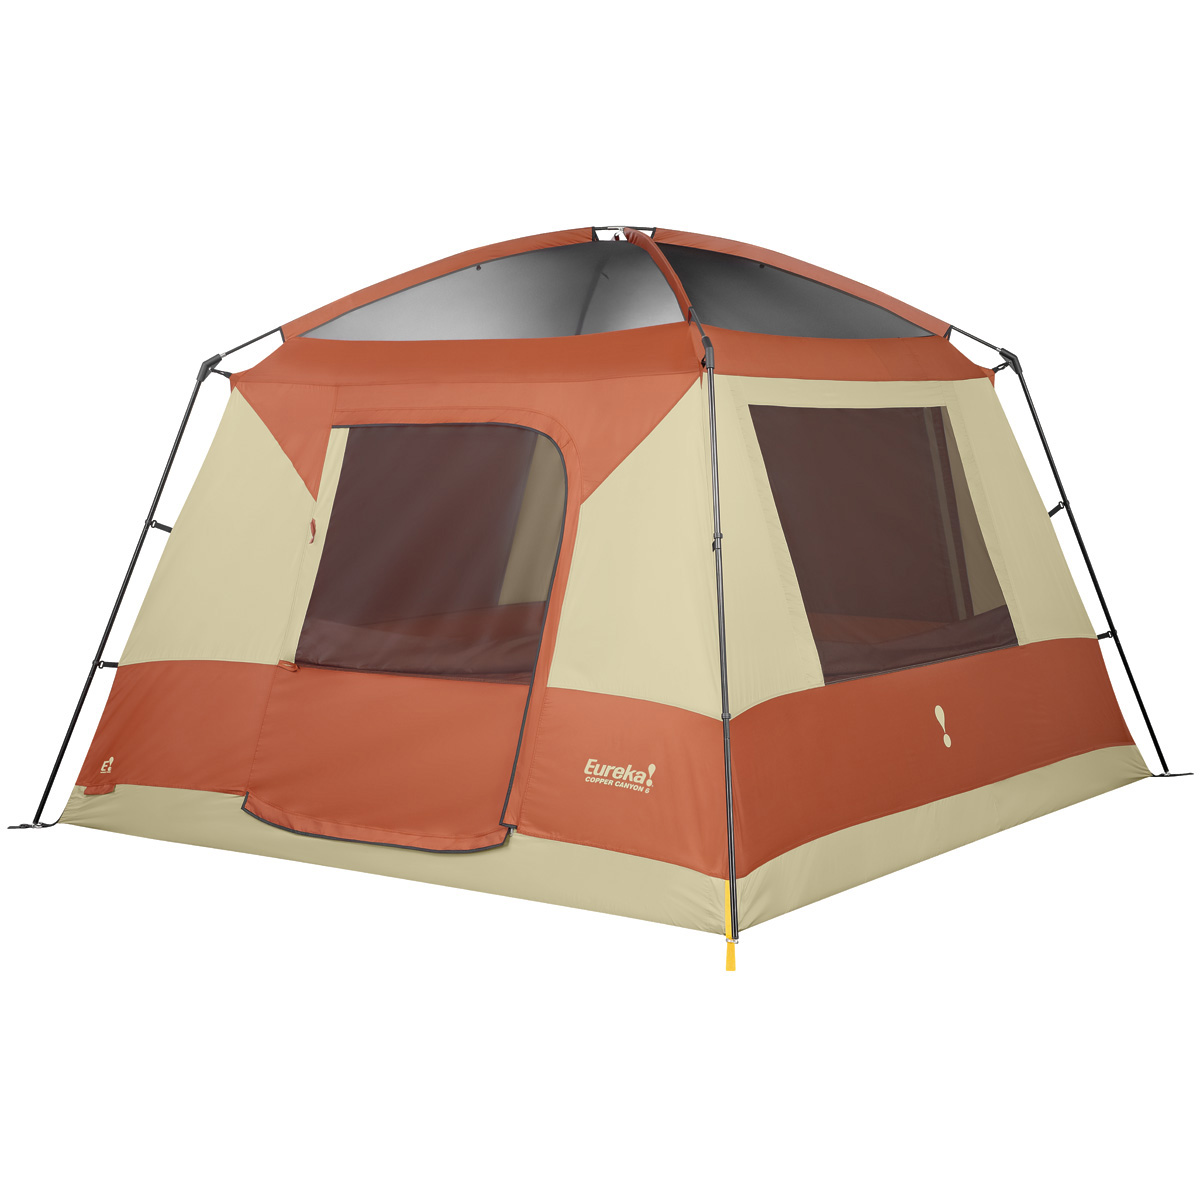 Copper Canyon 6 with Fly  sc 1 st  Tents | Eureka! - Johnson Outdoors & Copper Canyon 6 Tent | Eureka!